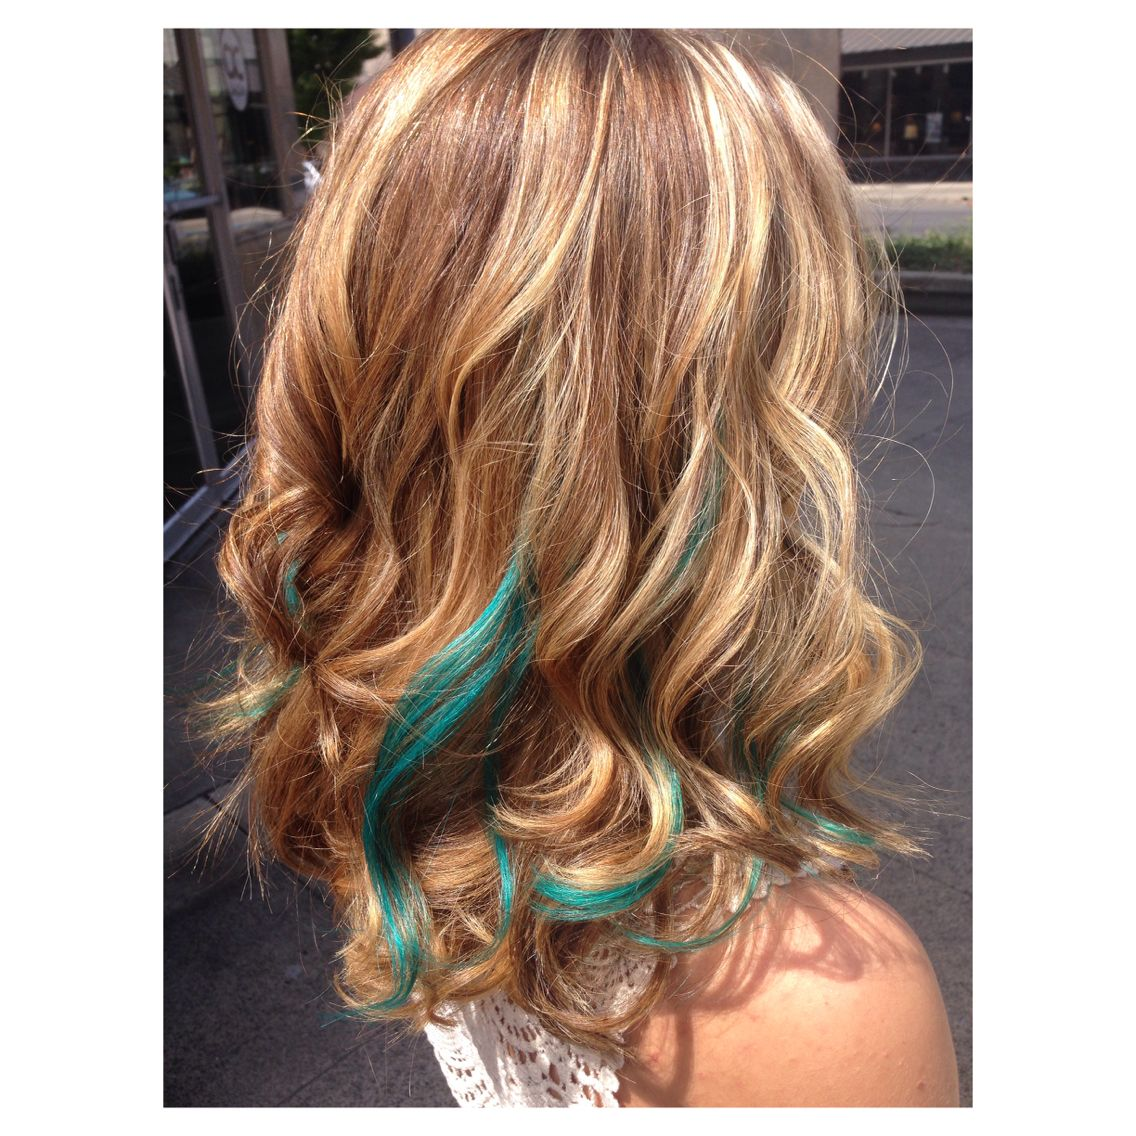 Blonde Highlights Medium Low Lights And Turquoise Streak Extensions Hair Streaks Blonde Turquoise Hair Blue Hair Highlights